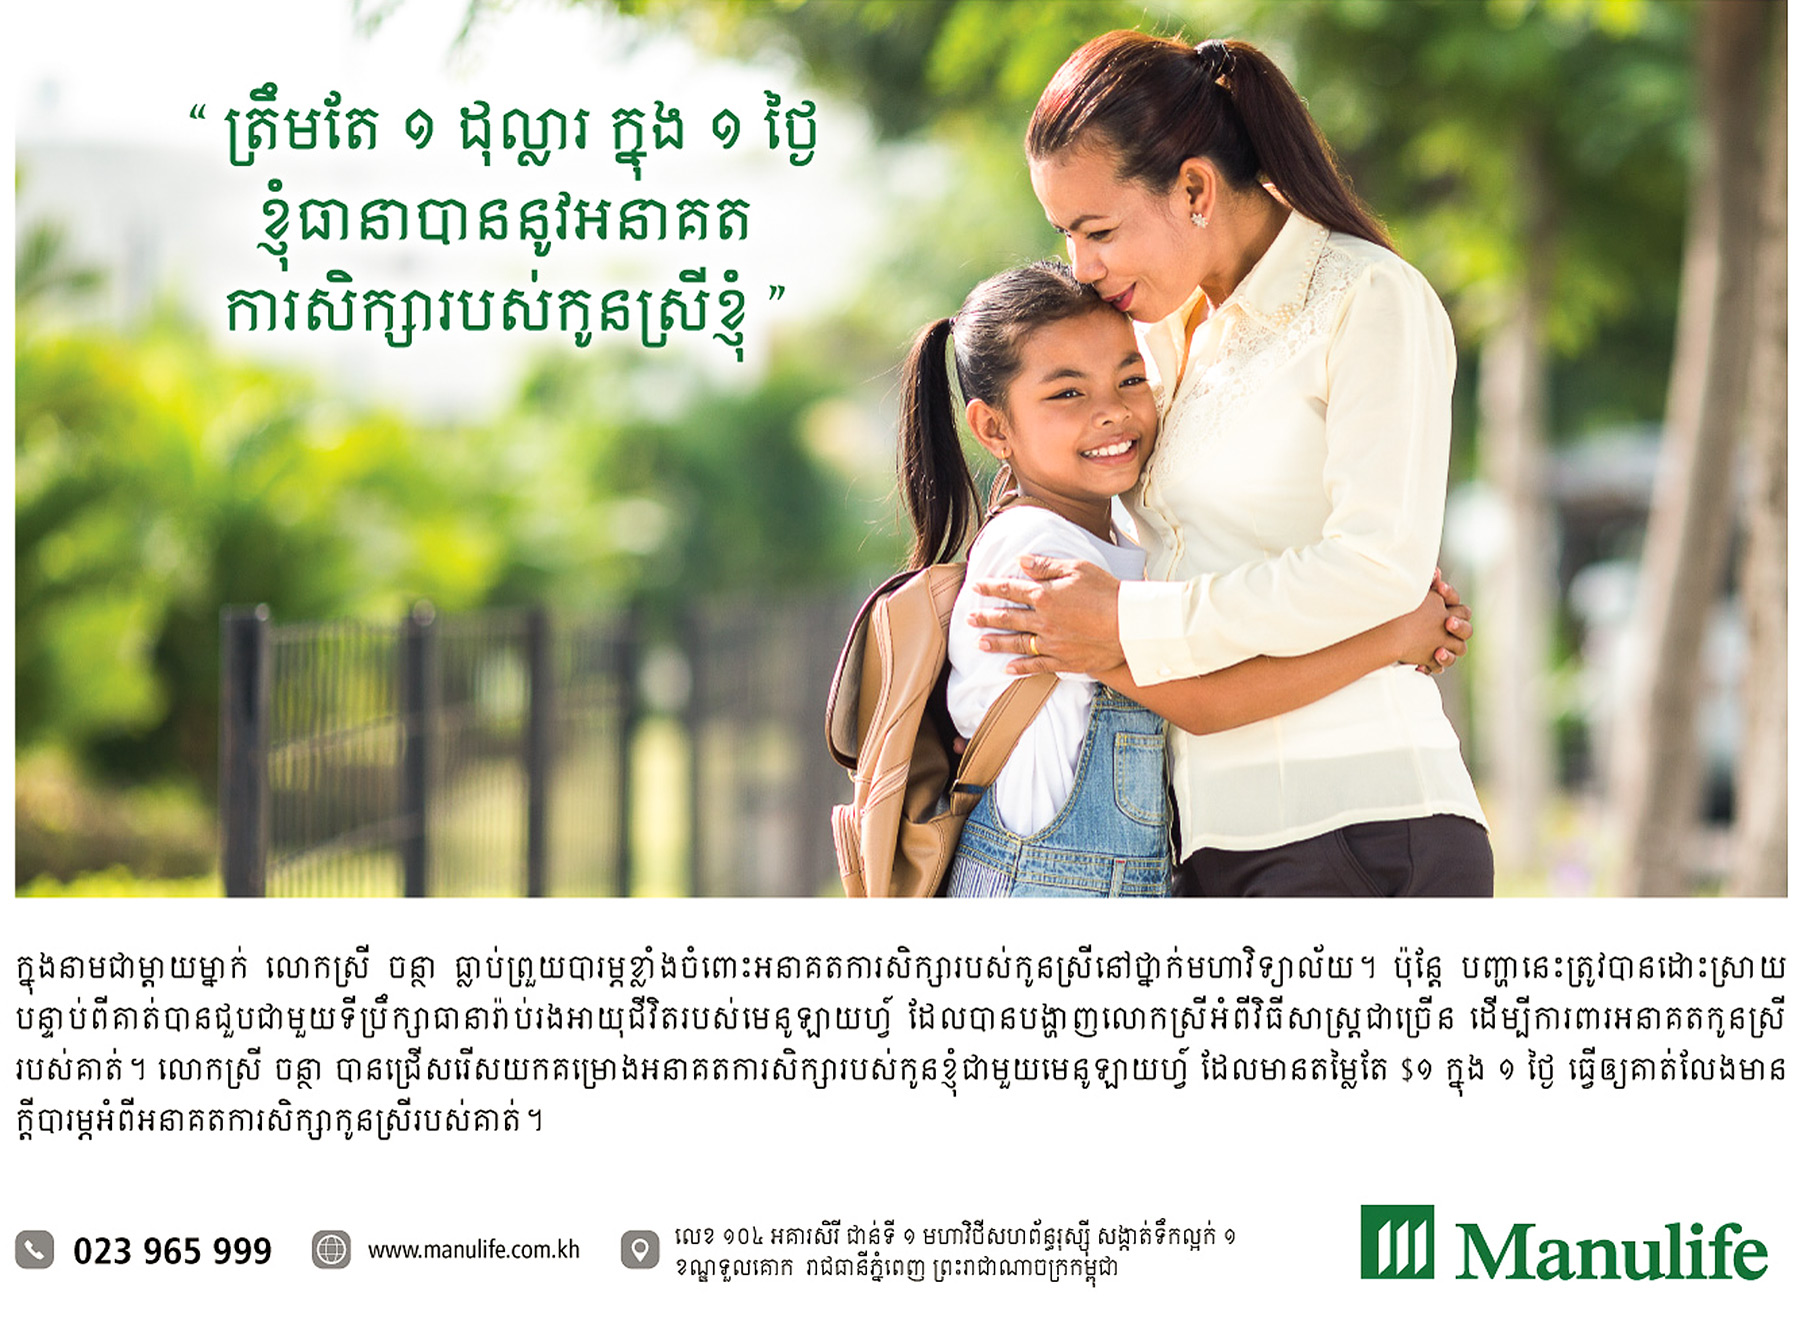 manulife-photo-shoot-phnom-penh-04.jpg